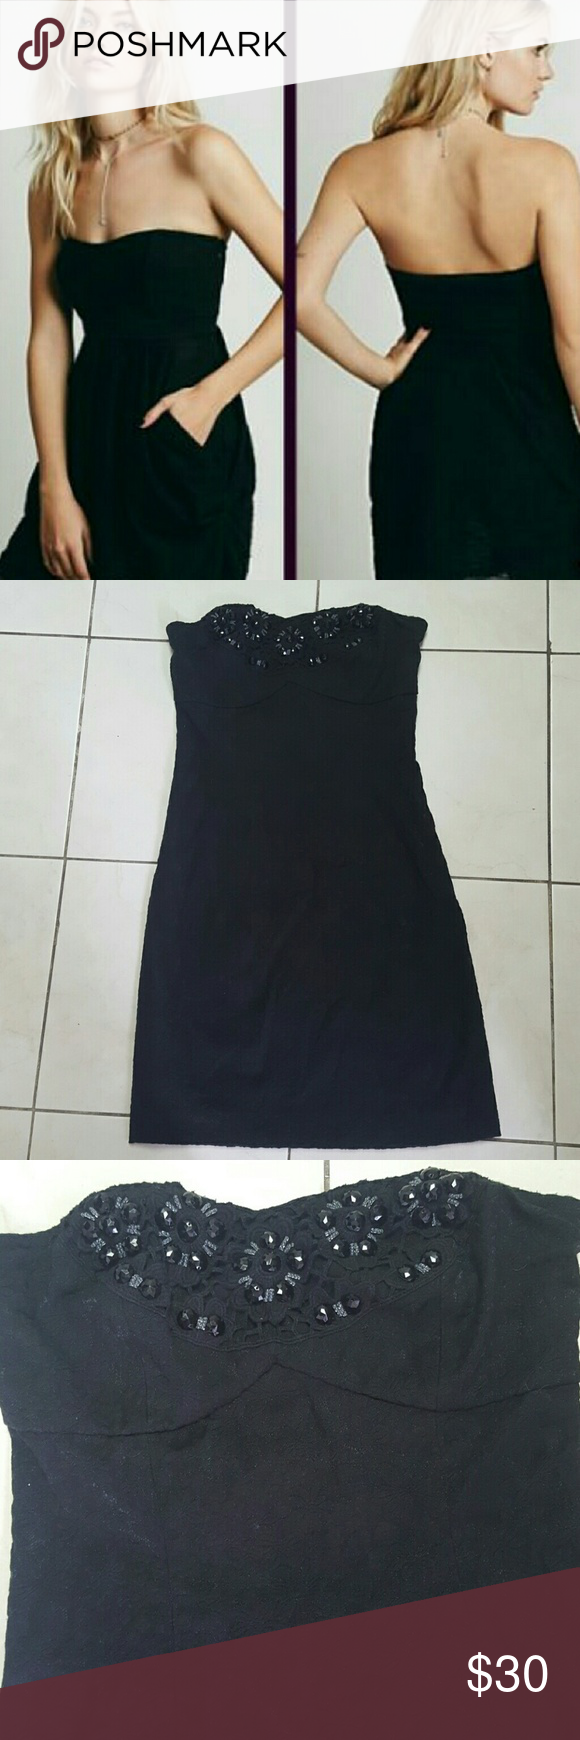 "Free People black strapless bodycon dress #1 NWOT Excellent condition black bodycon dress Beading at the Chest area Side zipper Mocked back Faint metellic shimmer  Measurements: Chest 13""; Waist 12.5""; Length 26""  Material: 30% Nylon; 67% Cotton; 3% Spandex Free People Dresses Strapless"